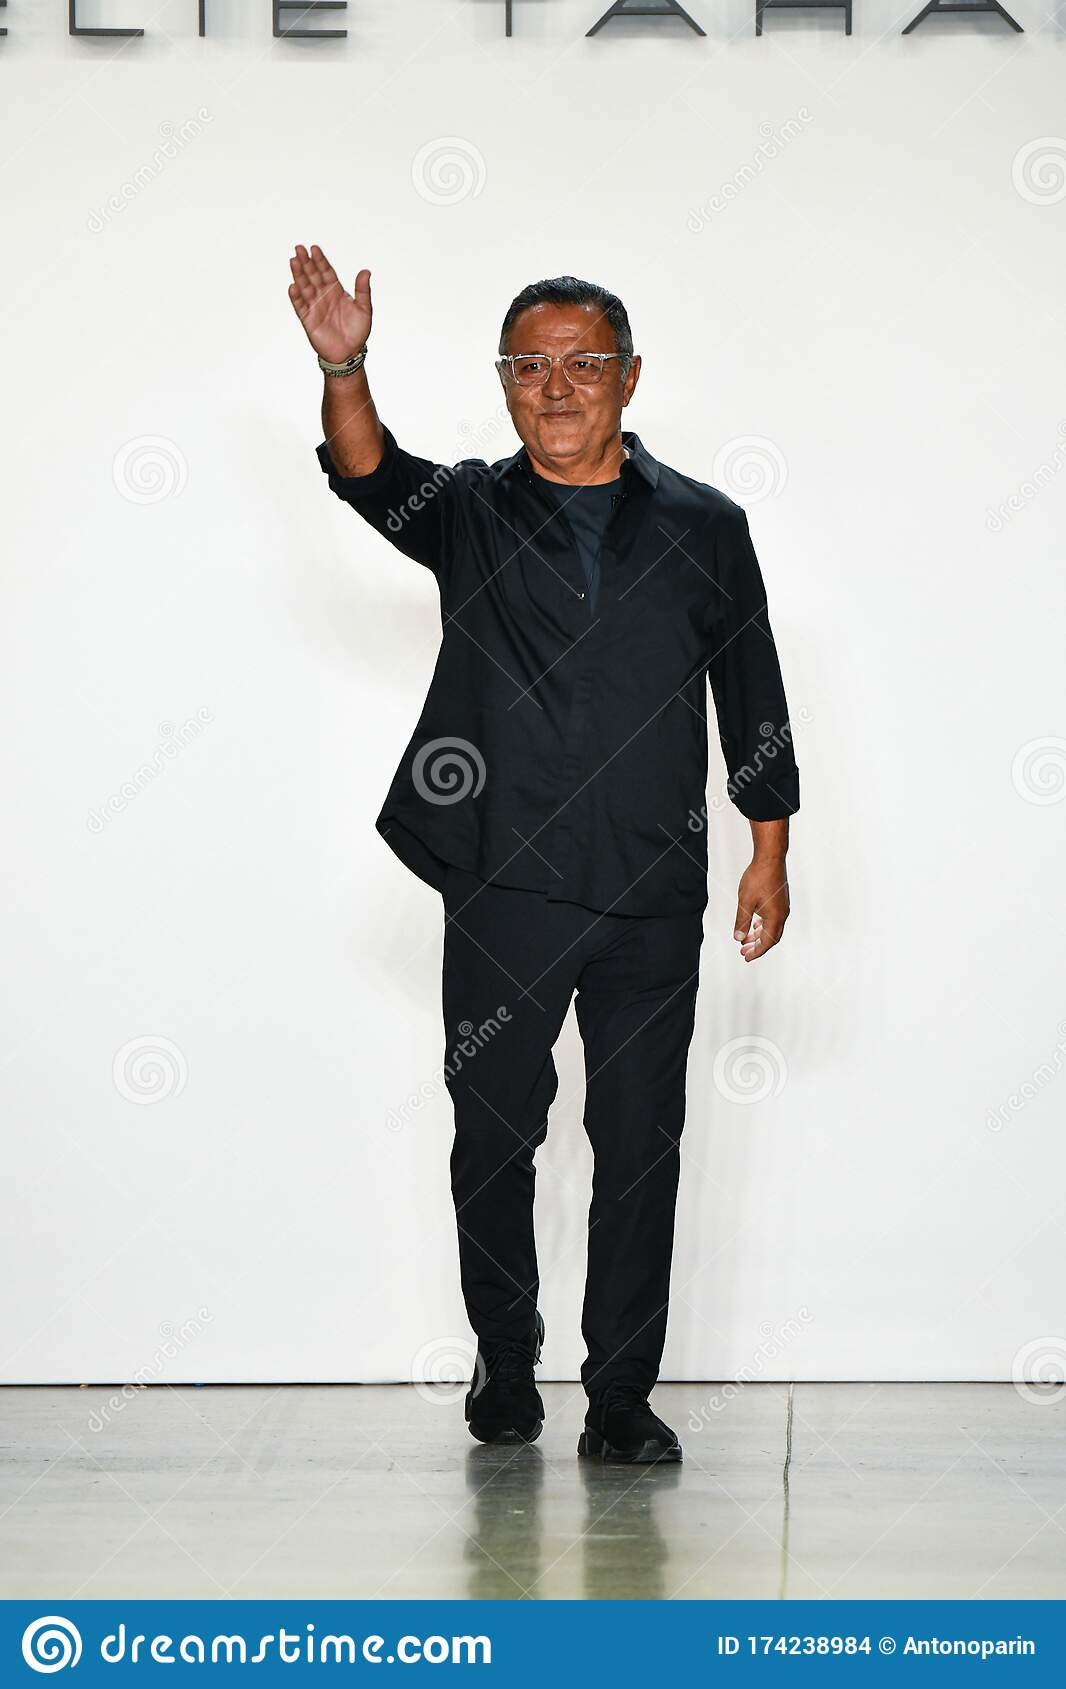 Designer Elie Tahari Greets The Audience After Presenting His Collection During New York Fashion Week Editorial Stock Image Image Of Elie Collection 174238984